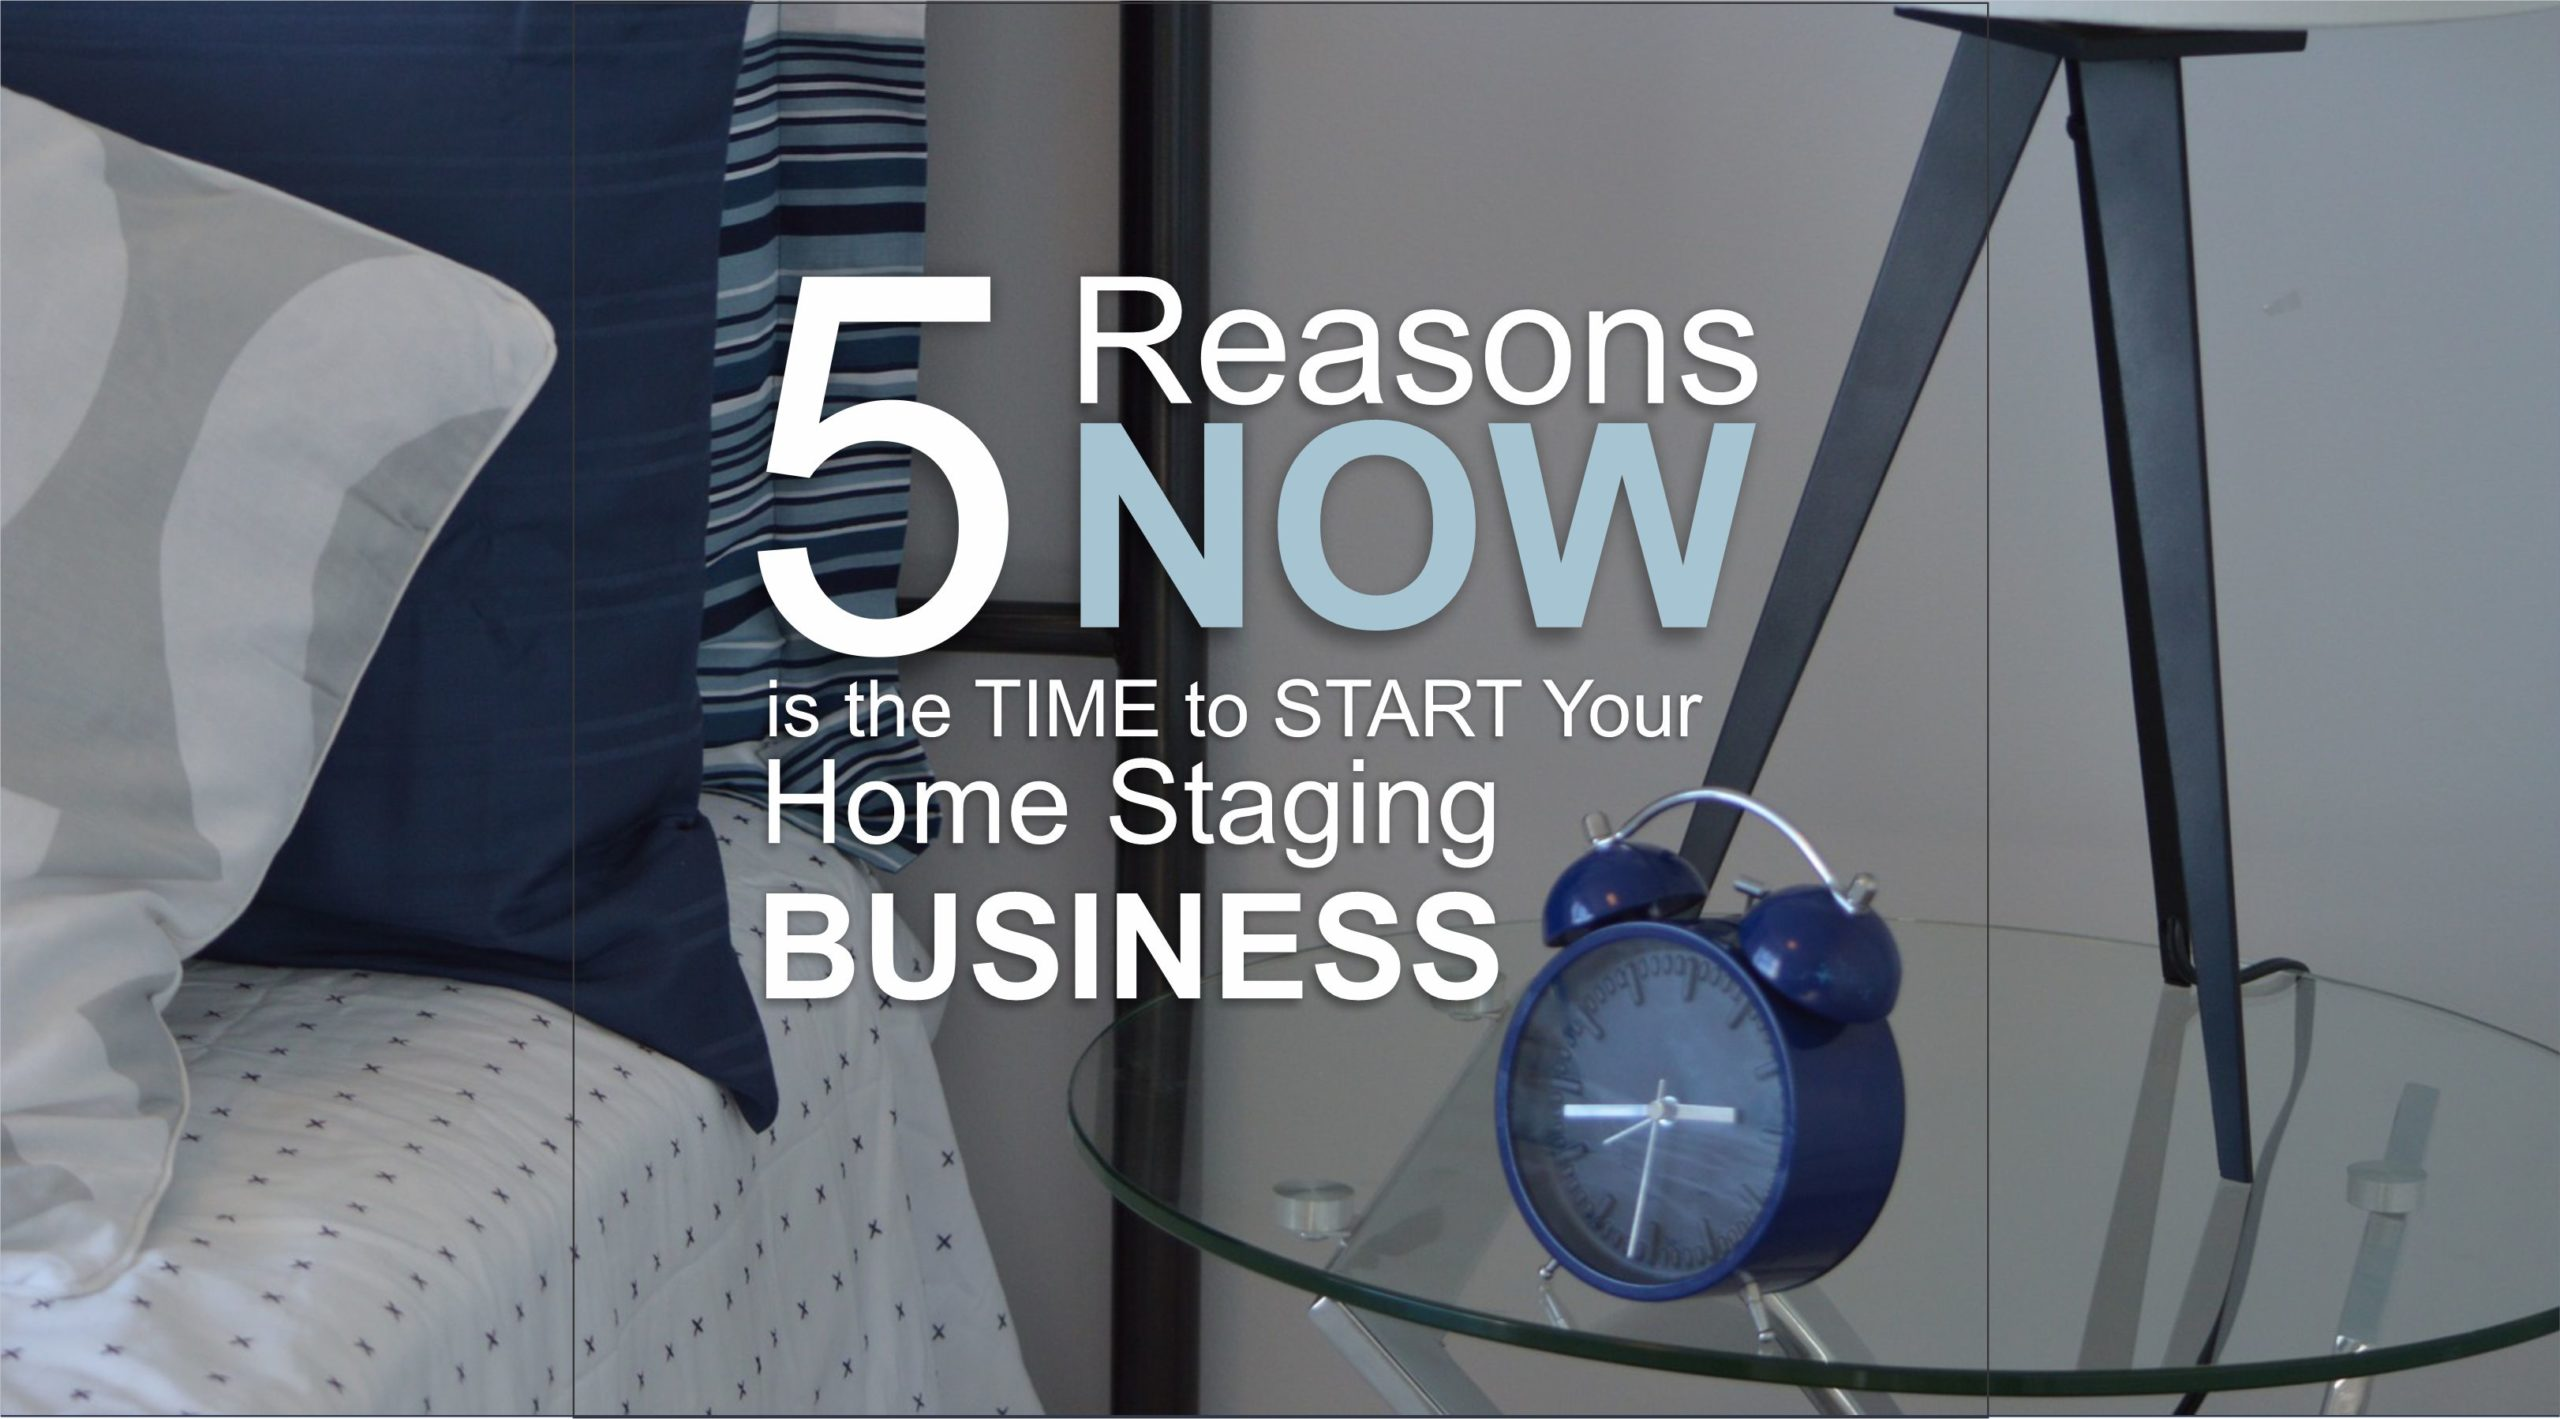 Five Reasons Now is the Time to Start Your Home Staging Business